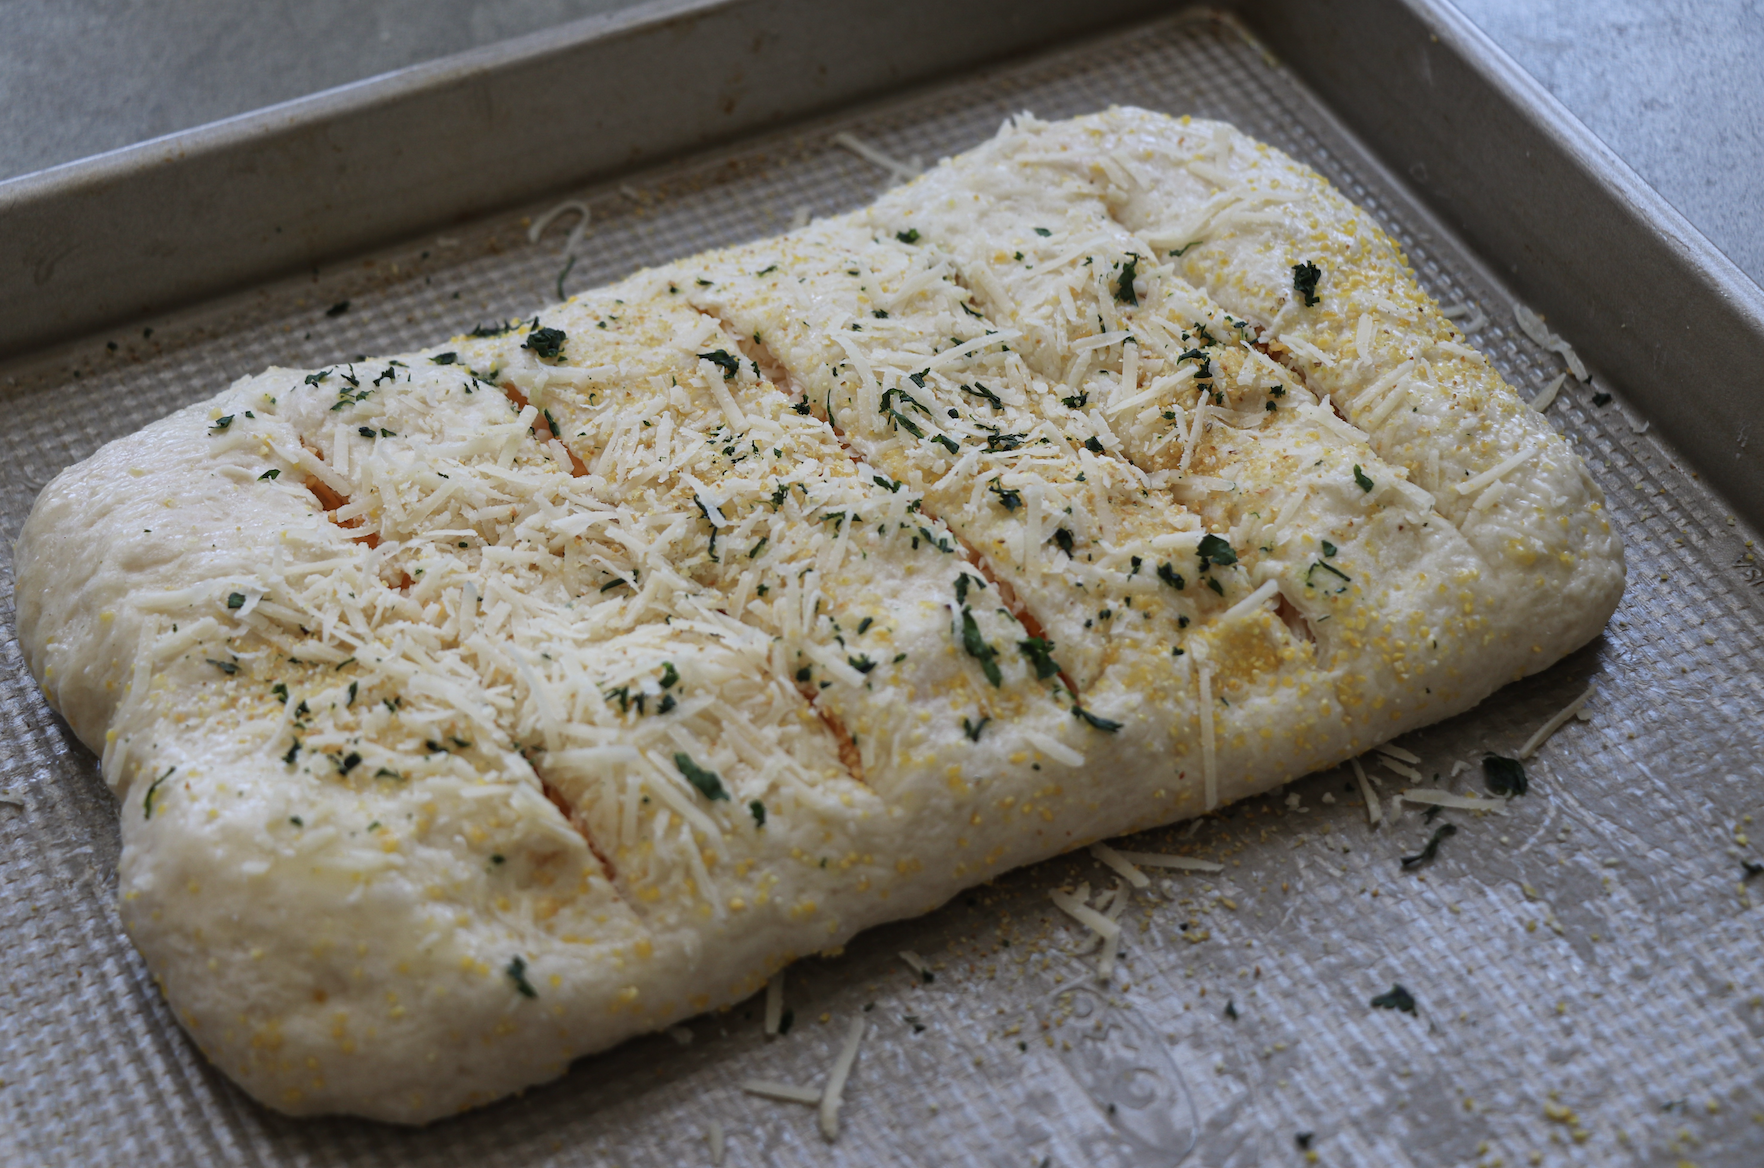 Stuffed Cheesy Bread Is Garlic And Cheese Stuffed Between Layers Of Homemade Dough It Is Pure Goodness That Is Tota Recipes Cooking Recipes Easy Family Meals